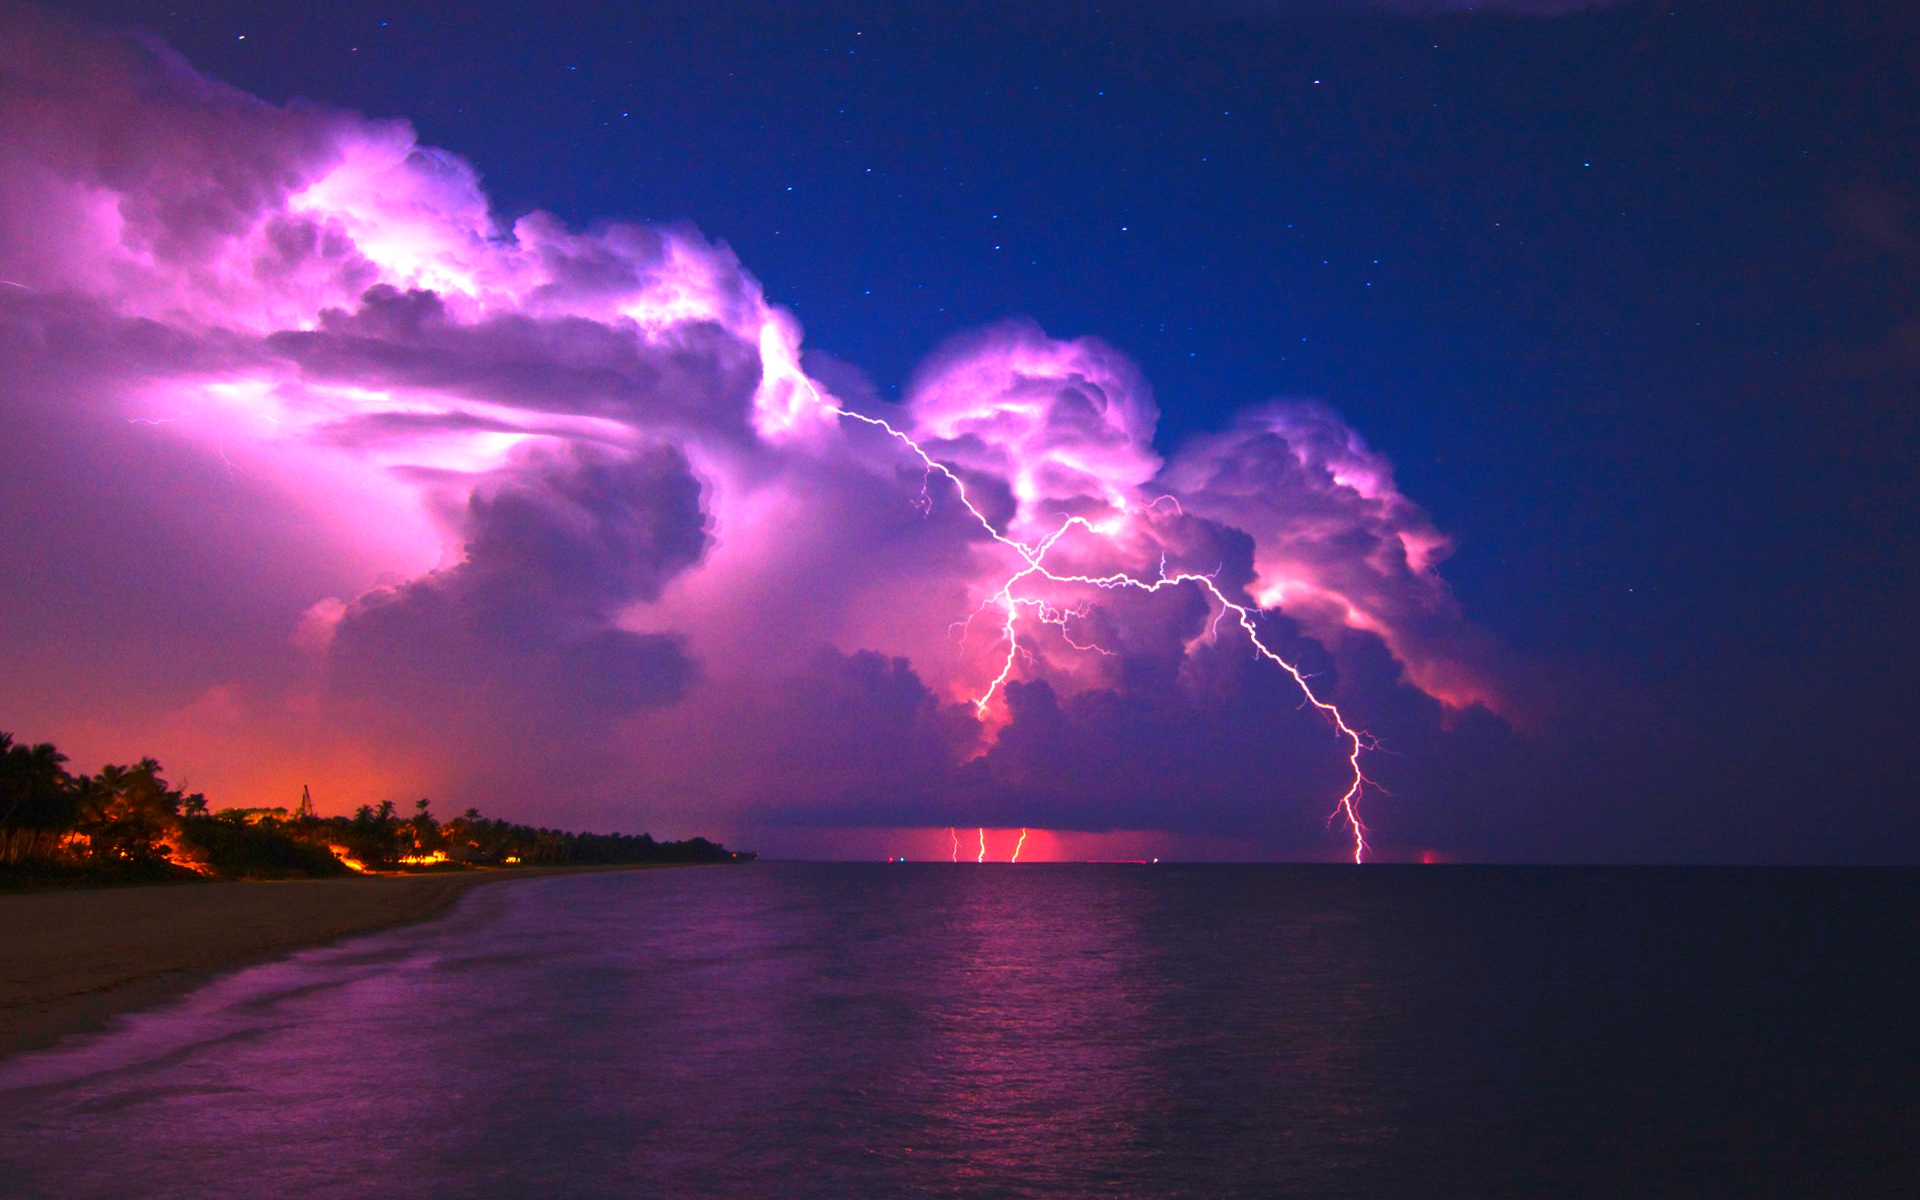 Lightning Wallpaper Hd - WallpaperSafari